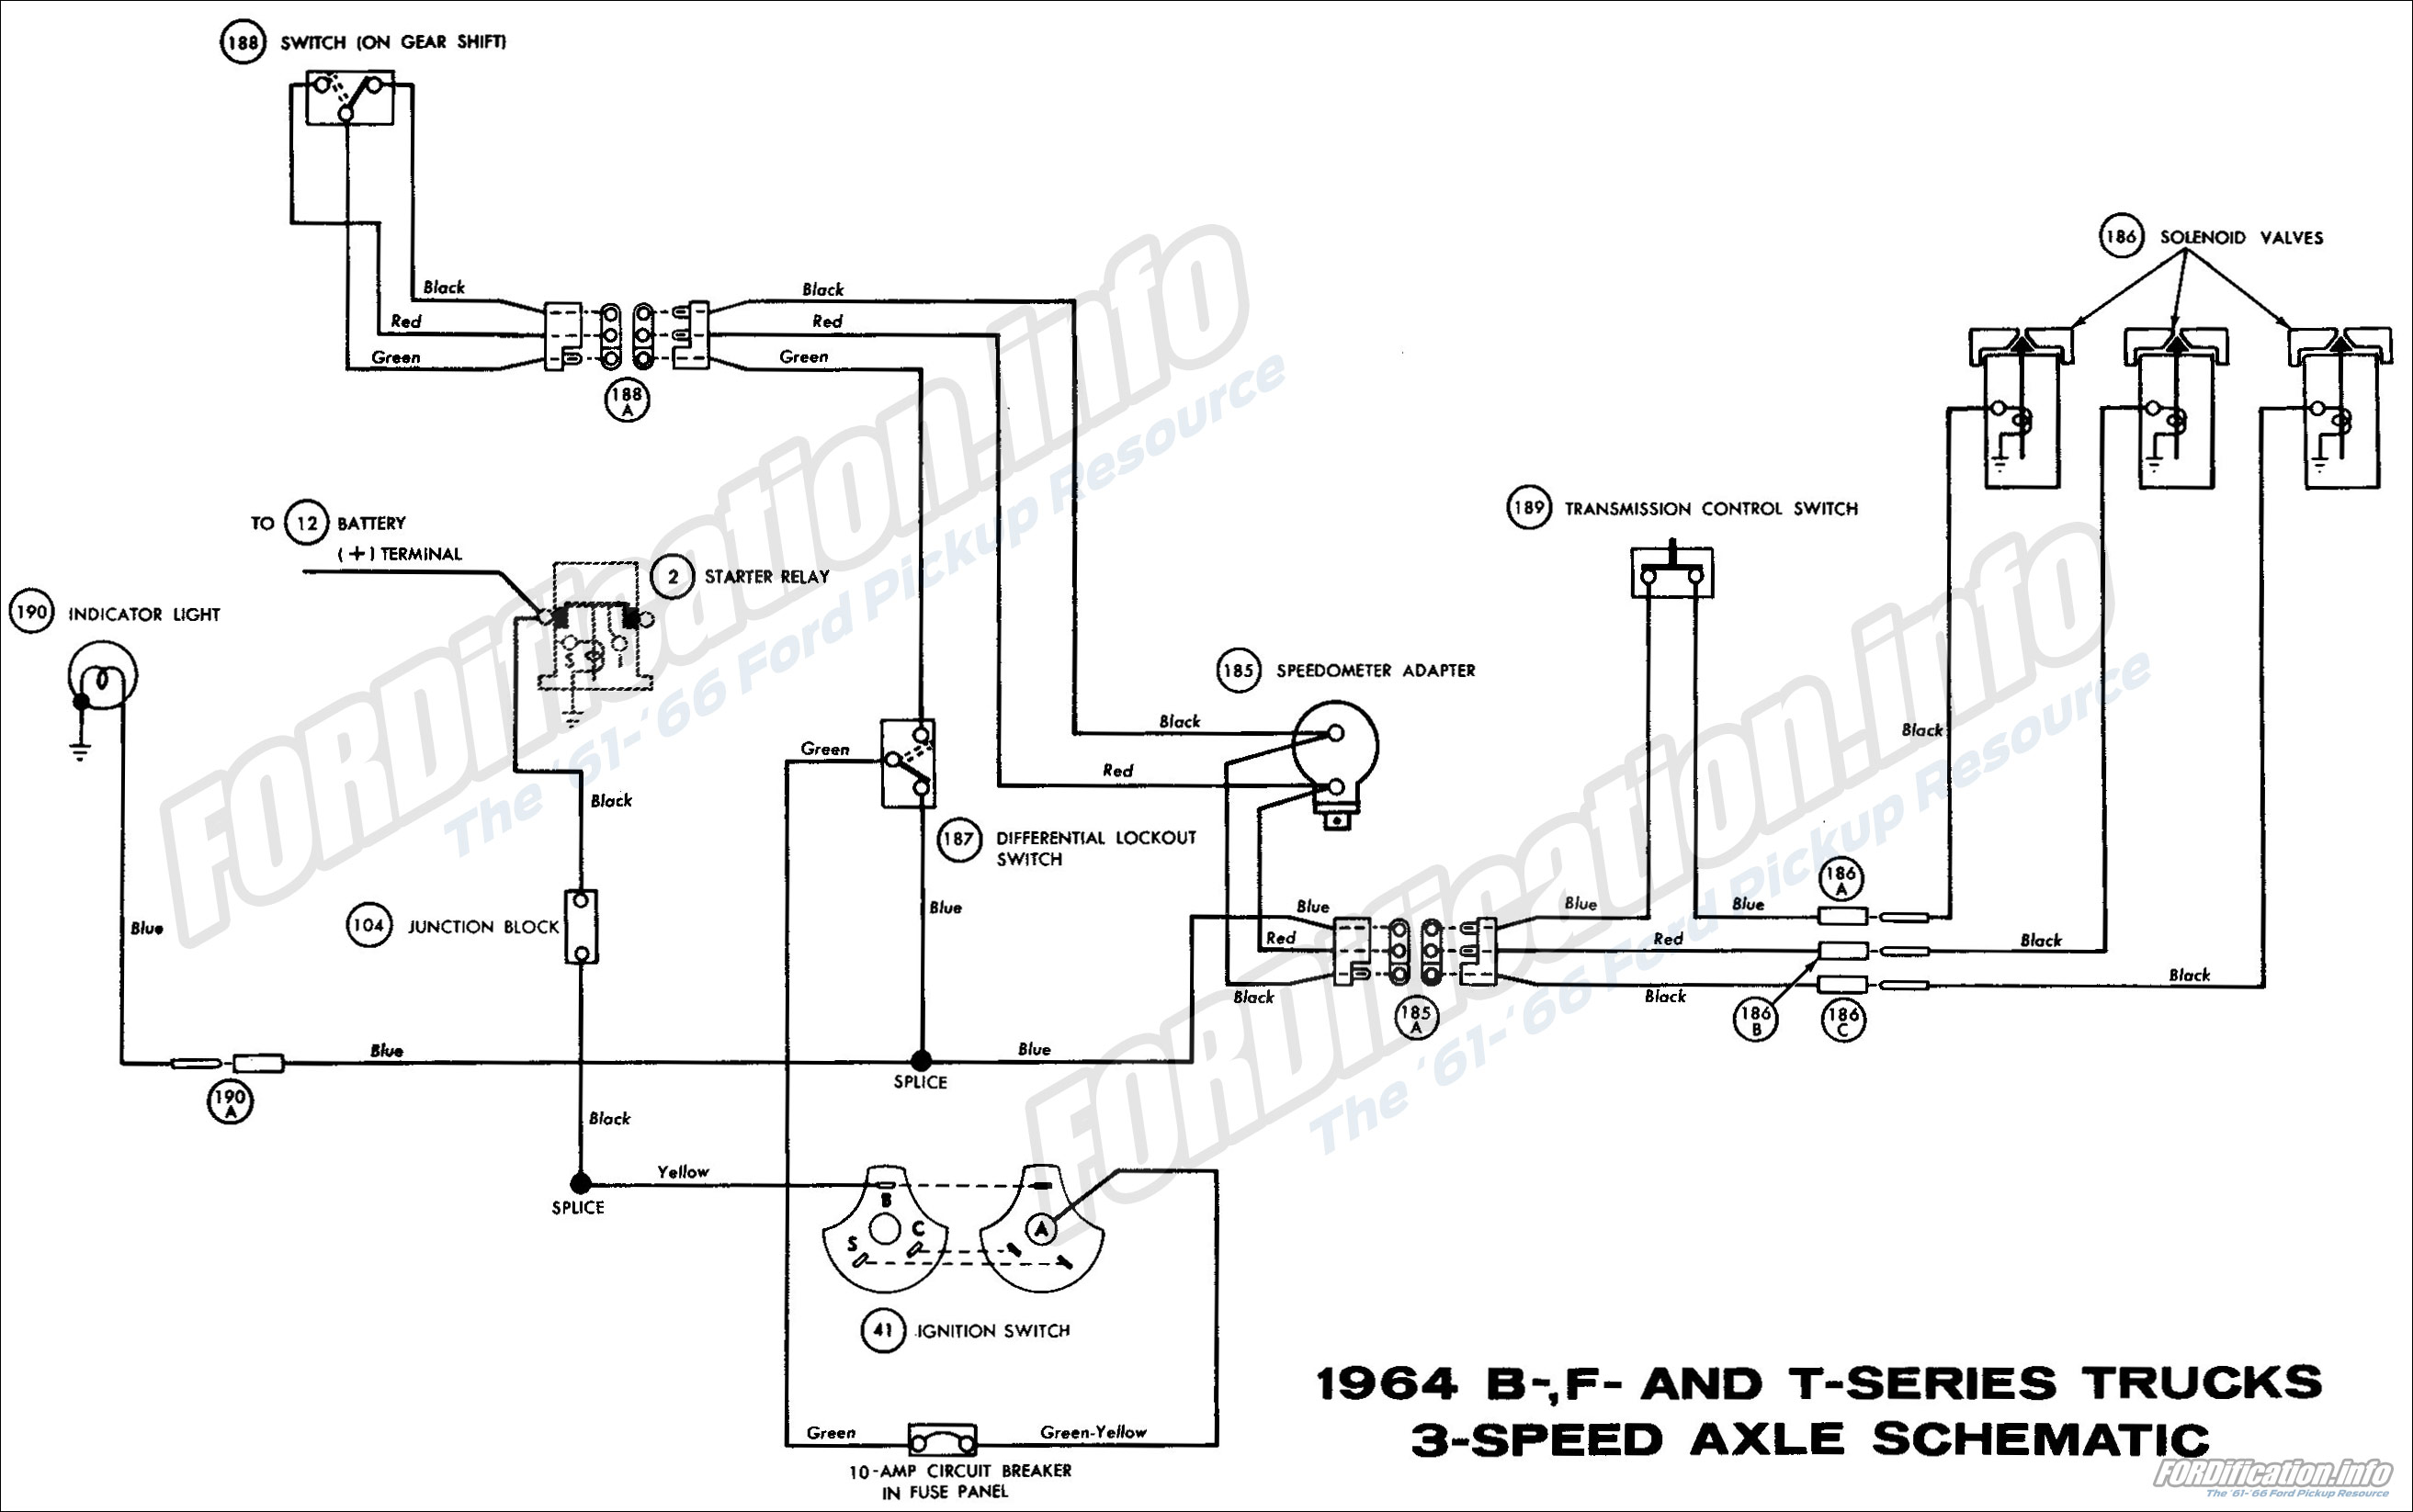 1964_19 1964 ford truck wiring diagrams fordification info the '61 '66 eaton automatic transmission wiring diagram at bayanpartner.co